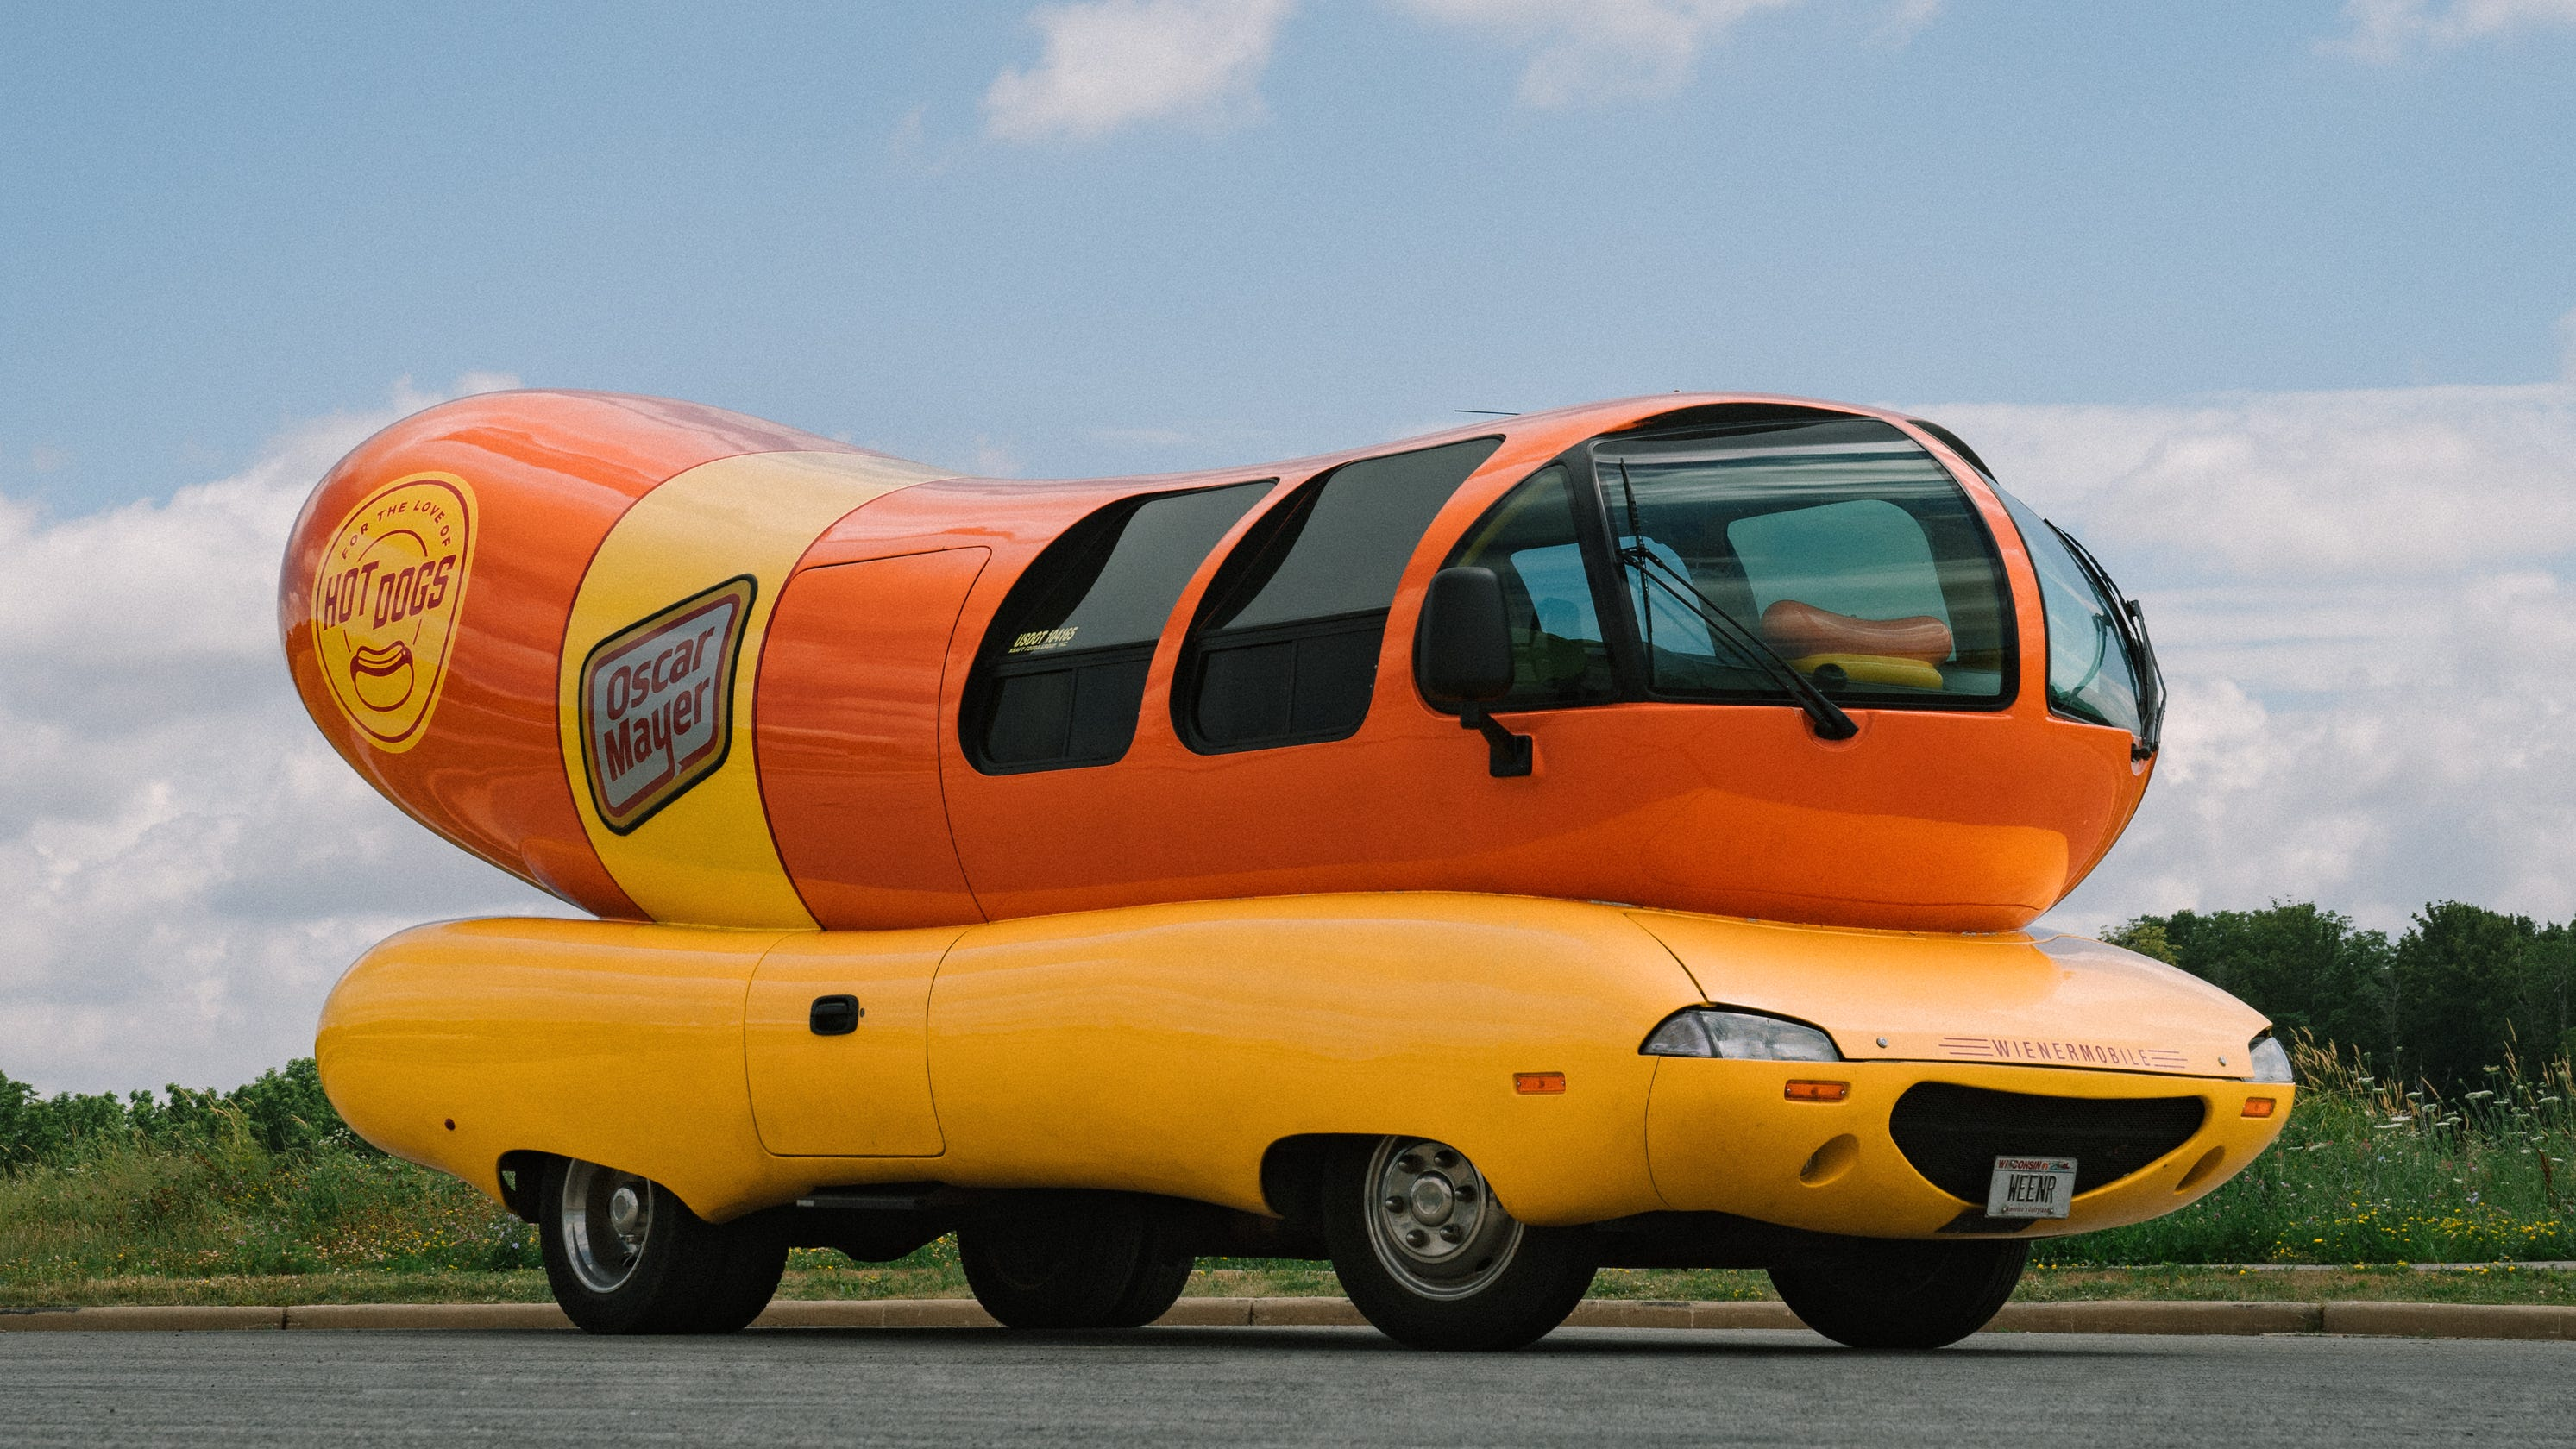 Airbnb adds Wienermobile to listings for National Hot Dog Day